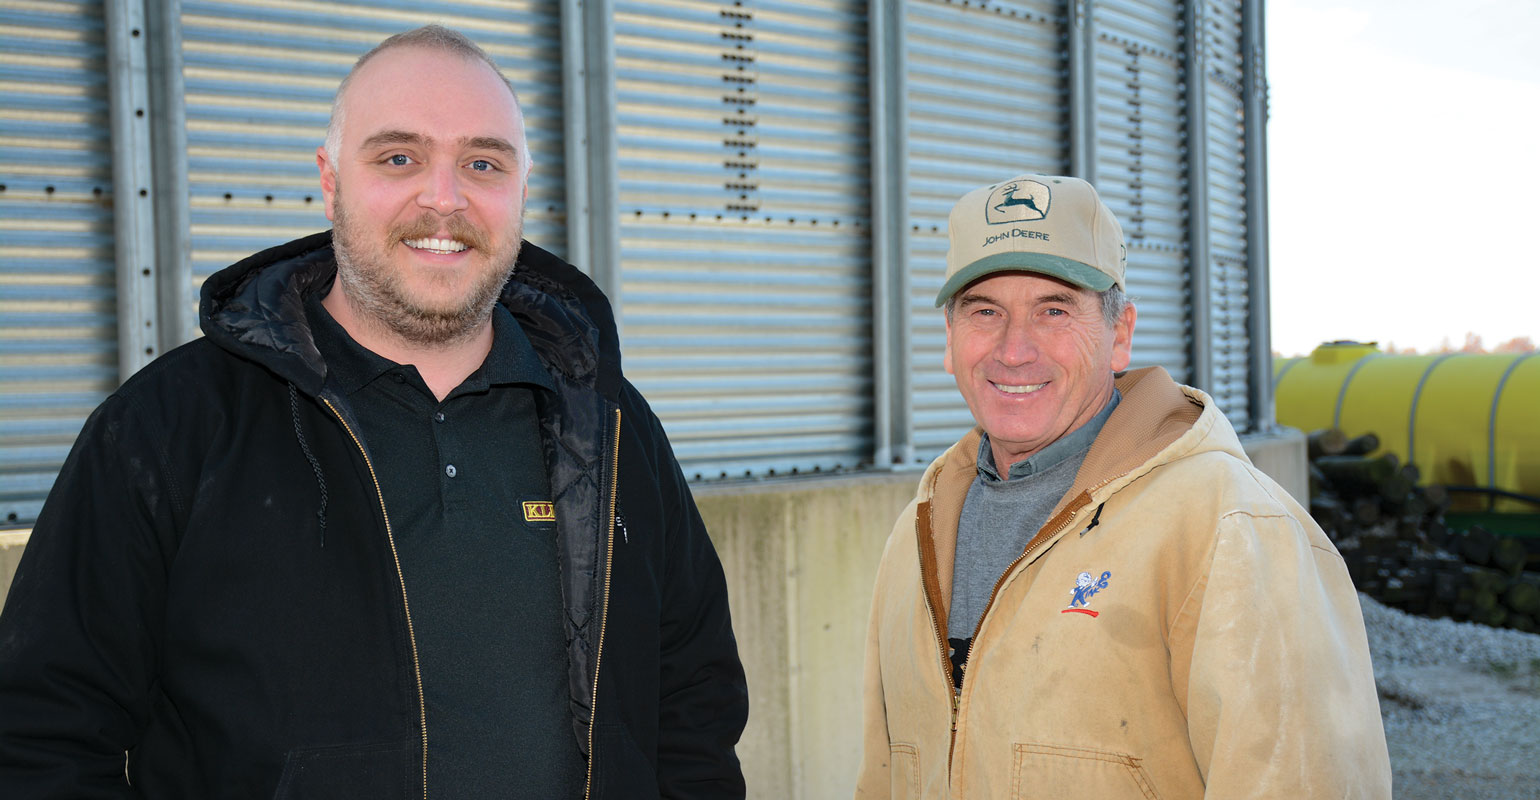 Two guys in front of a grain bin looking at the camera.